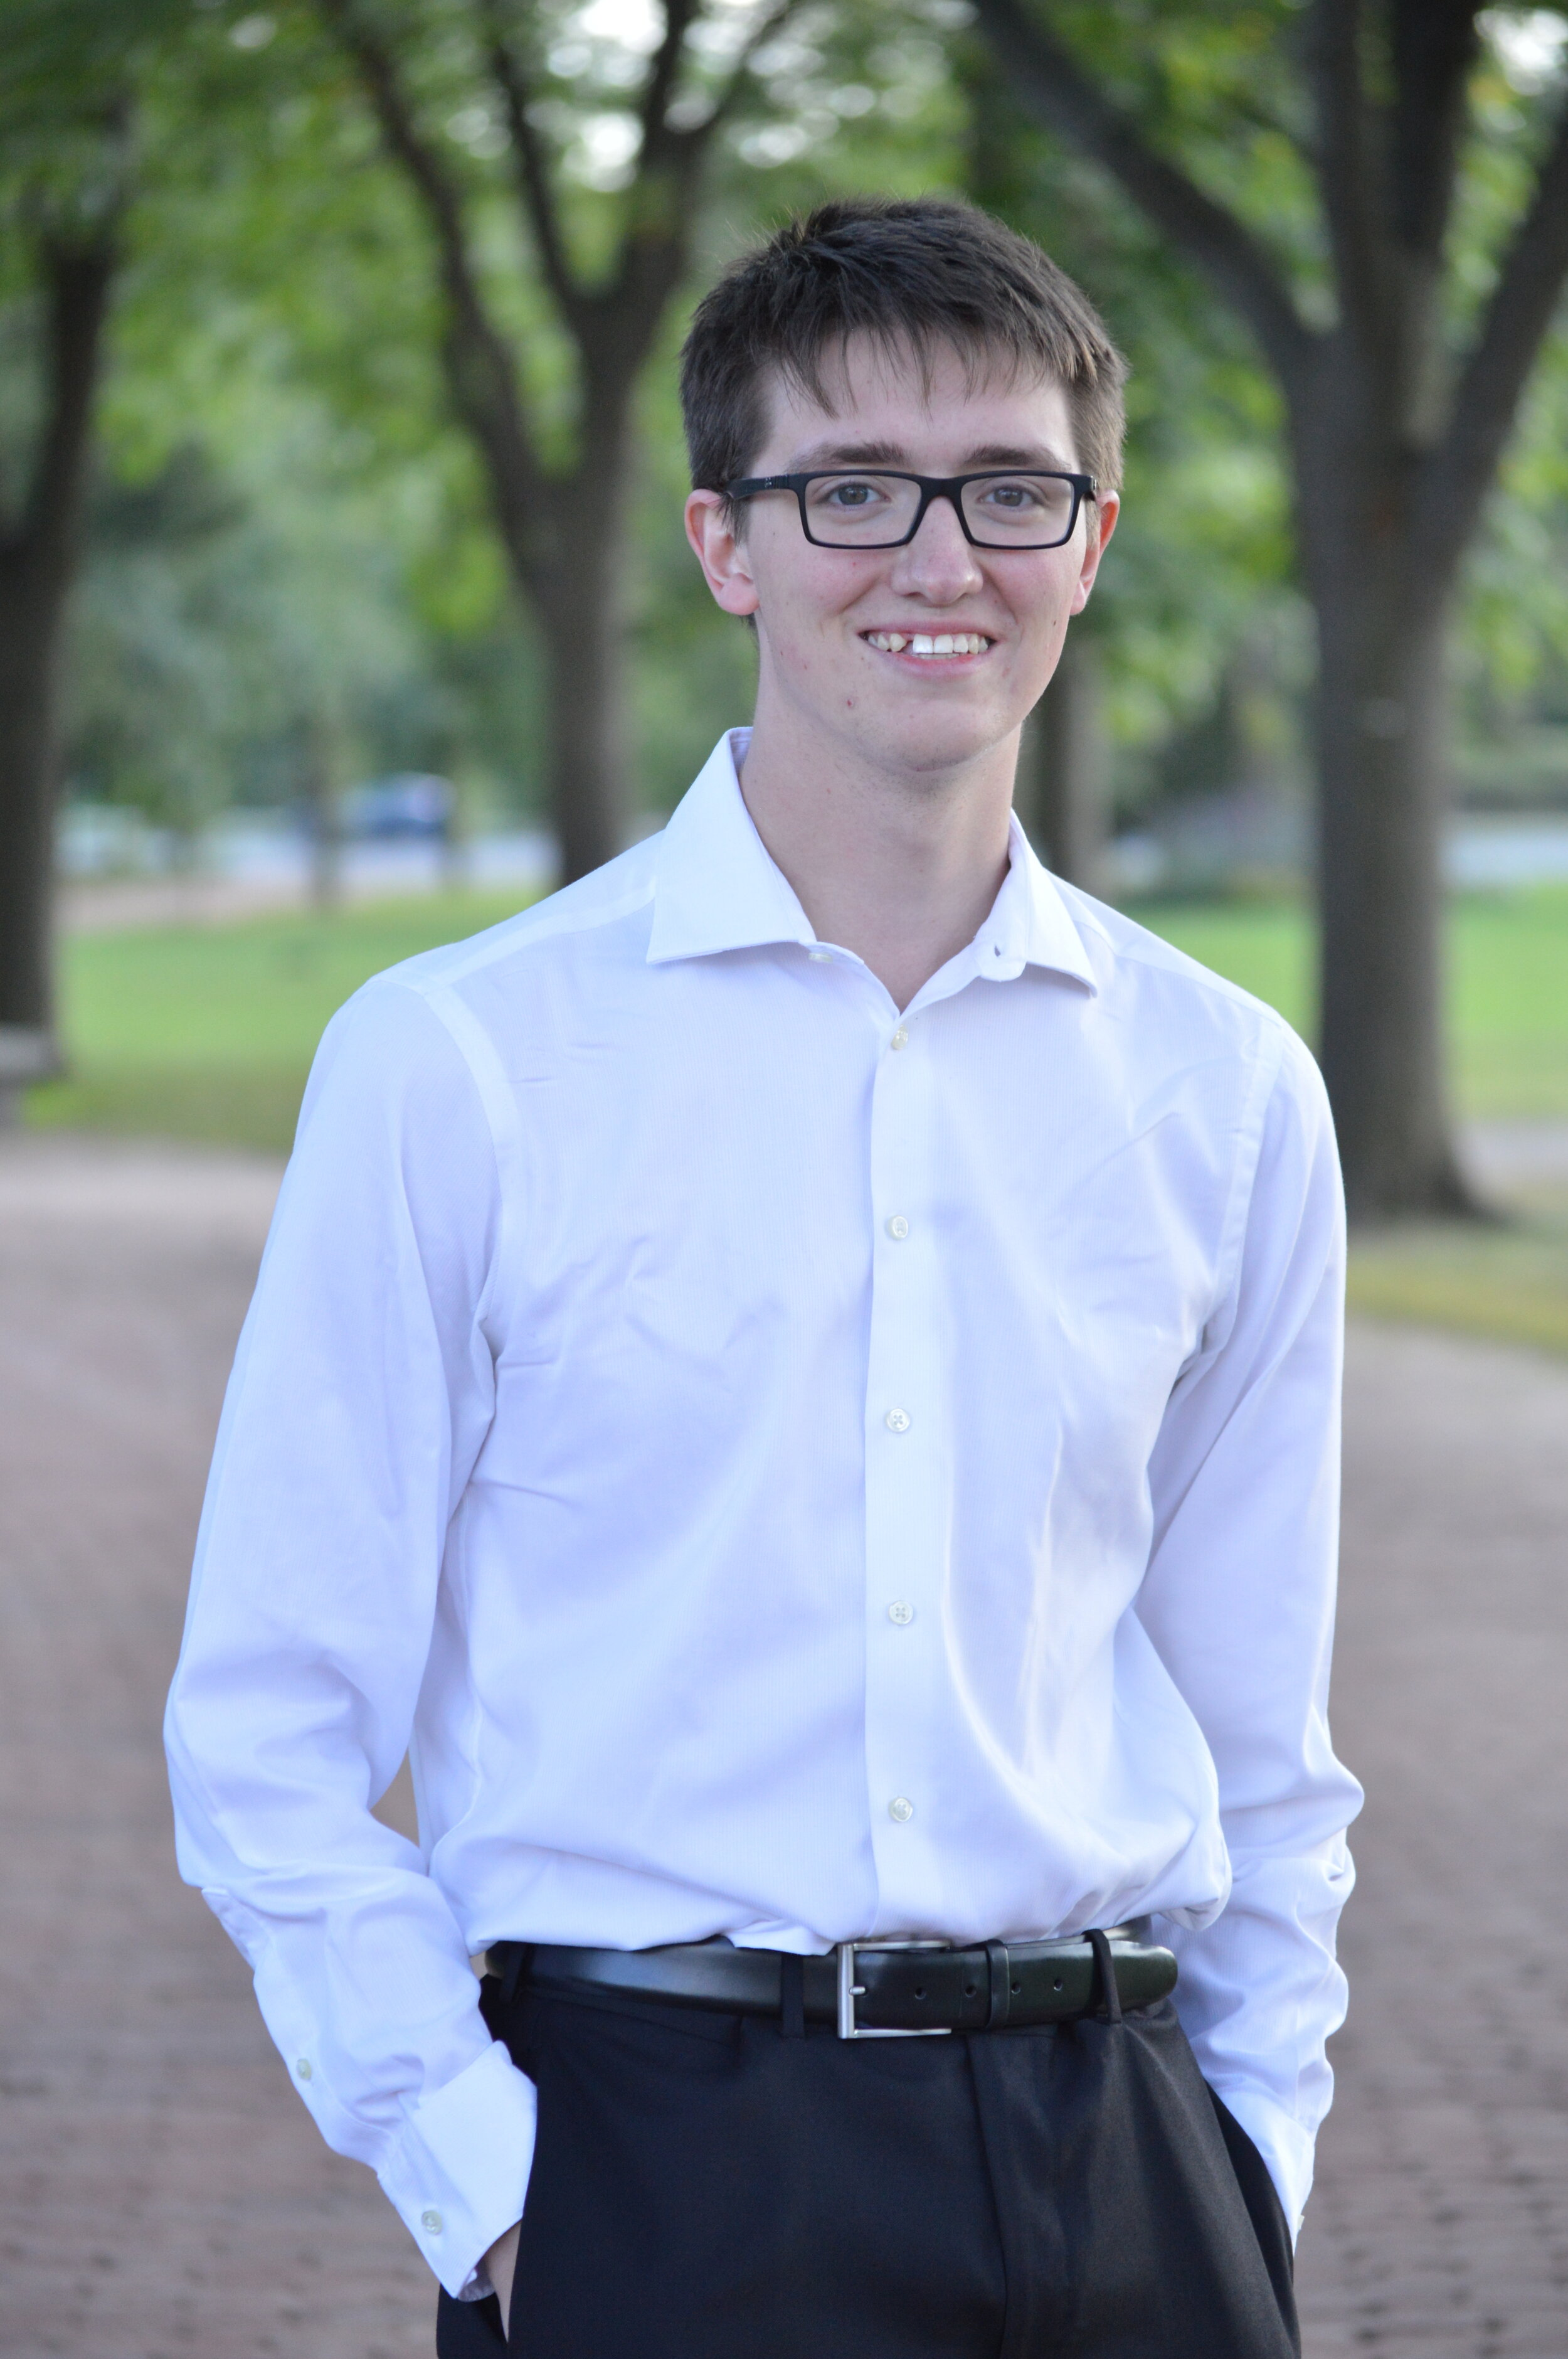 """Finance coordinator - Name: Zachary PalmerProgram: 2nd Year Accounting3 favourite things: Travelling, Long walks on the Beach, Hanging out with Friends and FamilyFavourite TED Talk: """"How to Make Stress Your Friend"""" by Kelly McGonigal"""